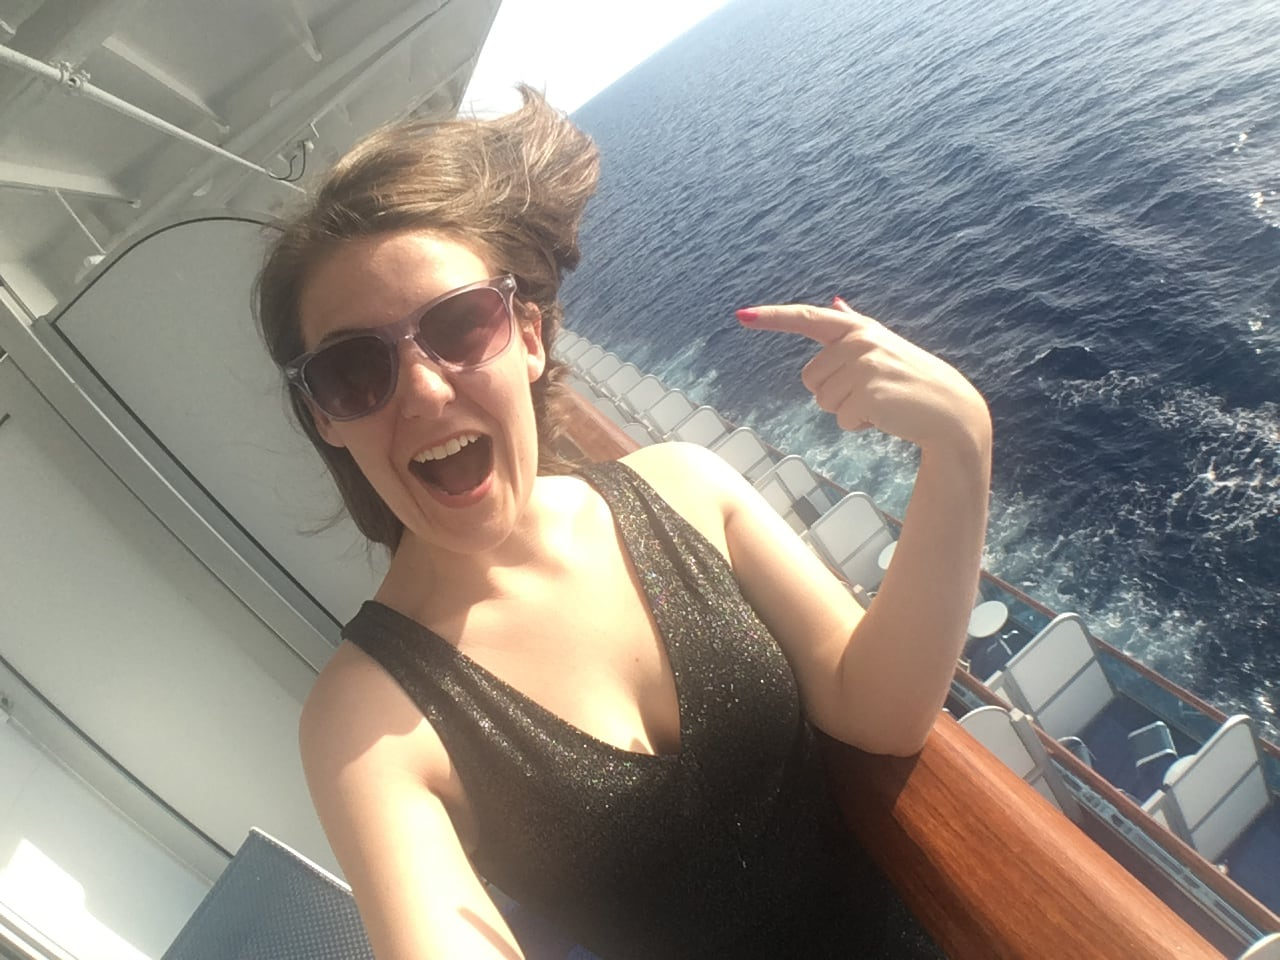 Golden Princess Balcony Cabin Tour Girl Happy Sunglass Cruise Hair Blowing in the wind